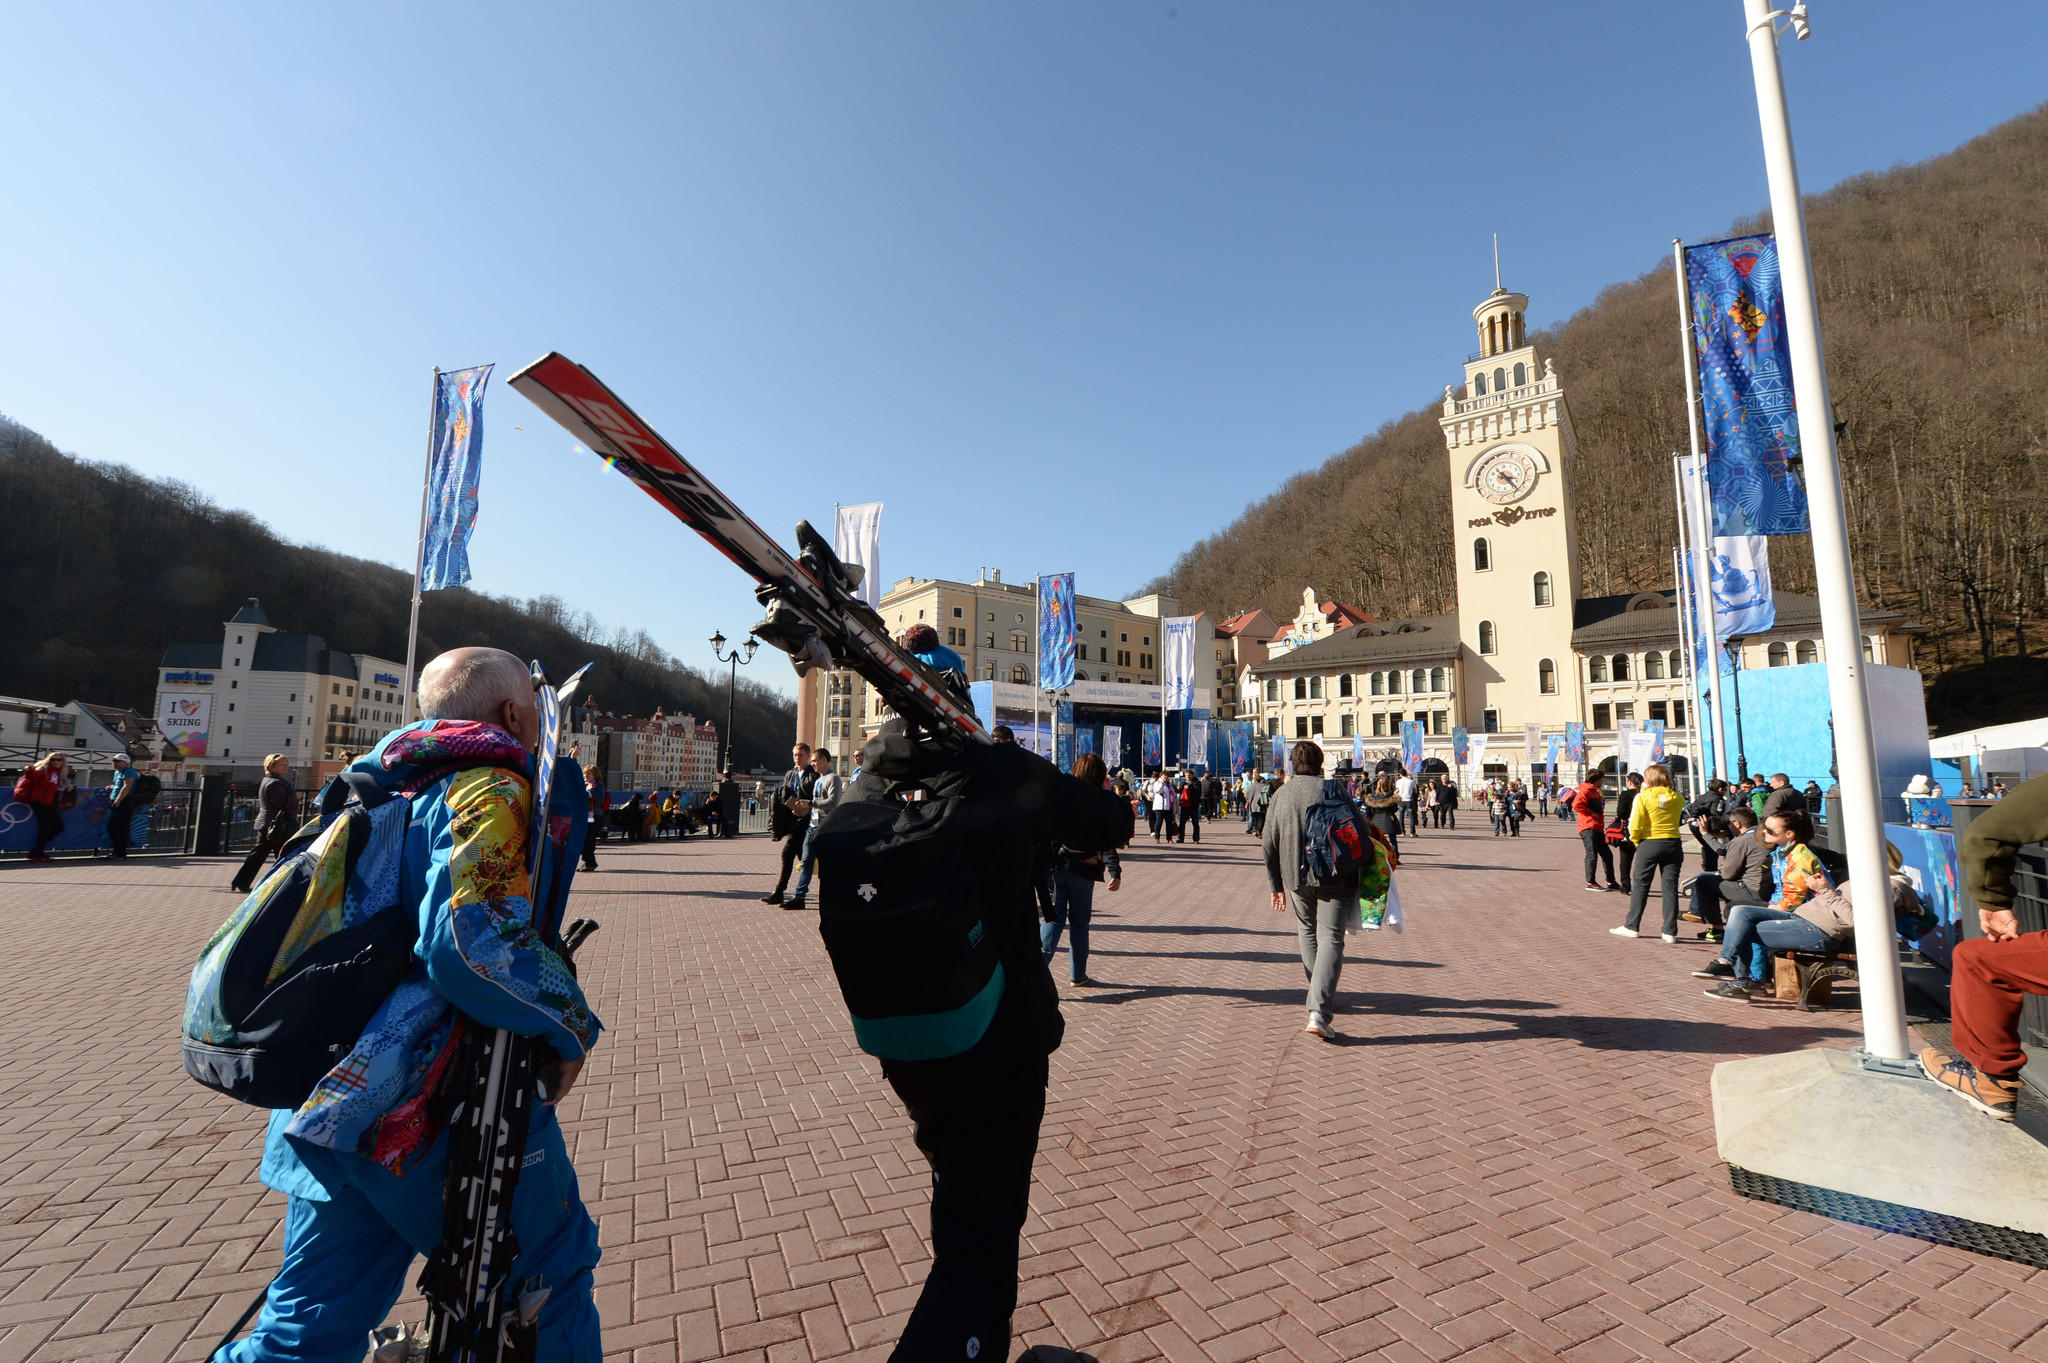 People carrying skis in the village of Rosa Khutor during the Sochi 2014 Olympic Winter Games.